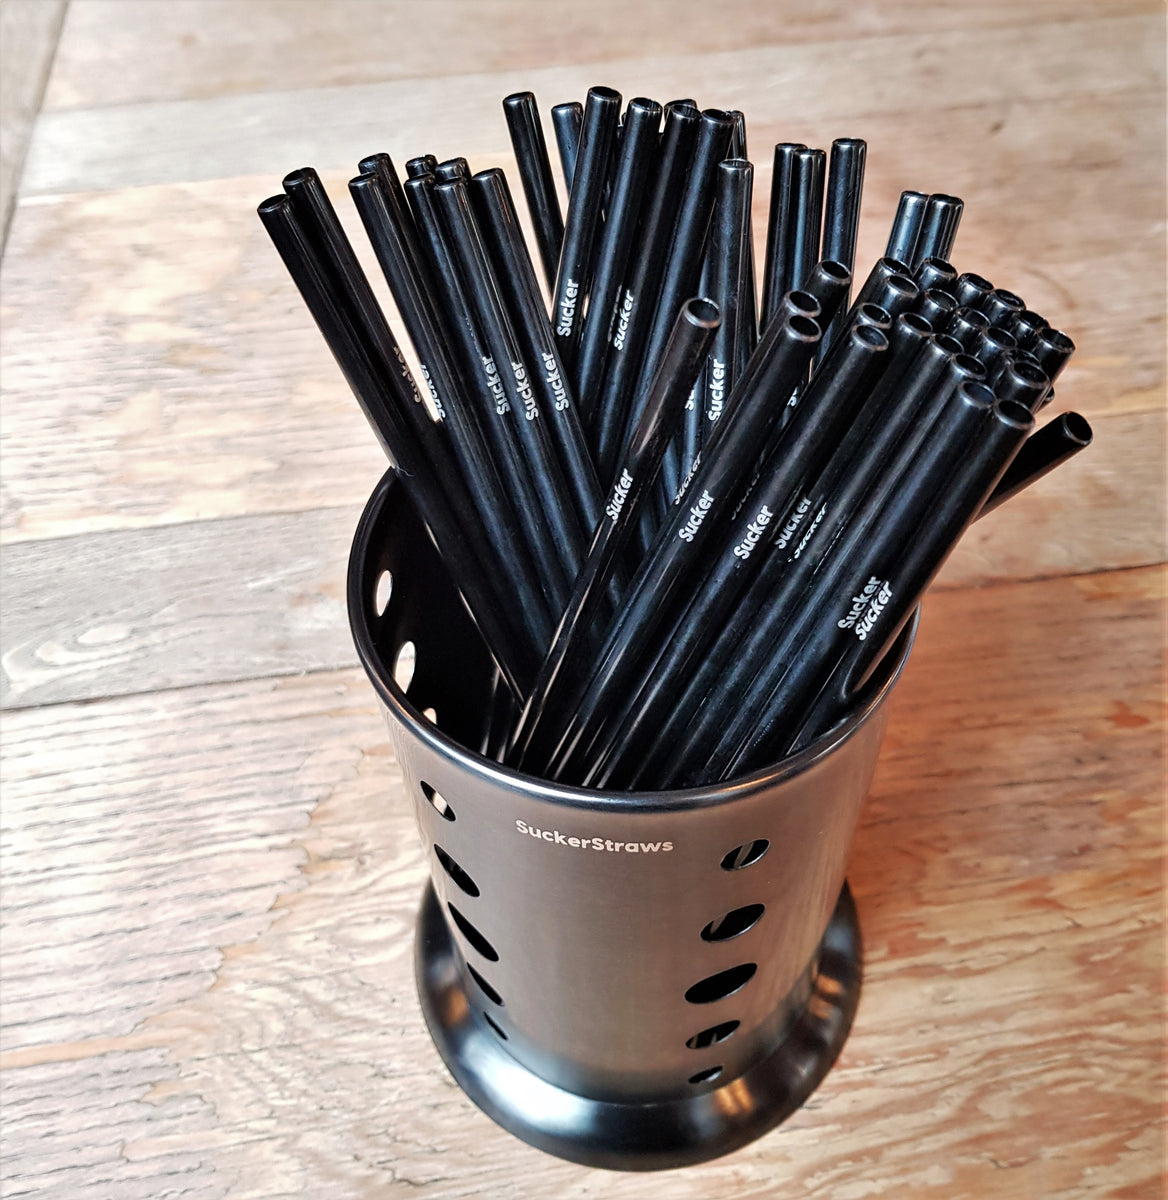 SuckerStraws, bulk sustainable and reusable metal straws shown in the washing basket on a table in a pub bar